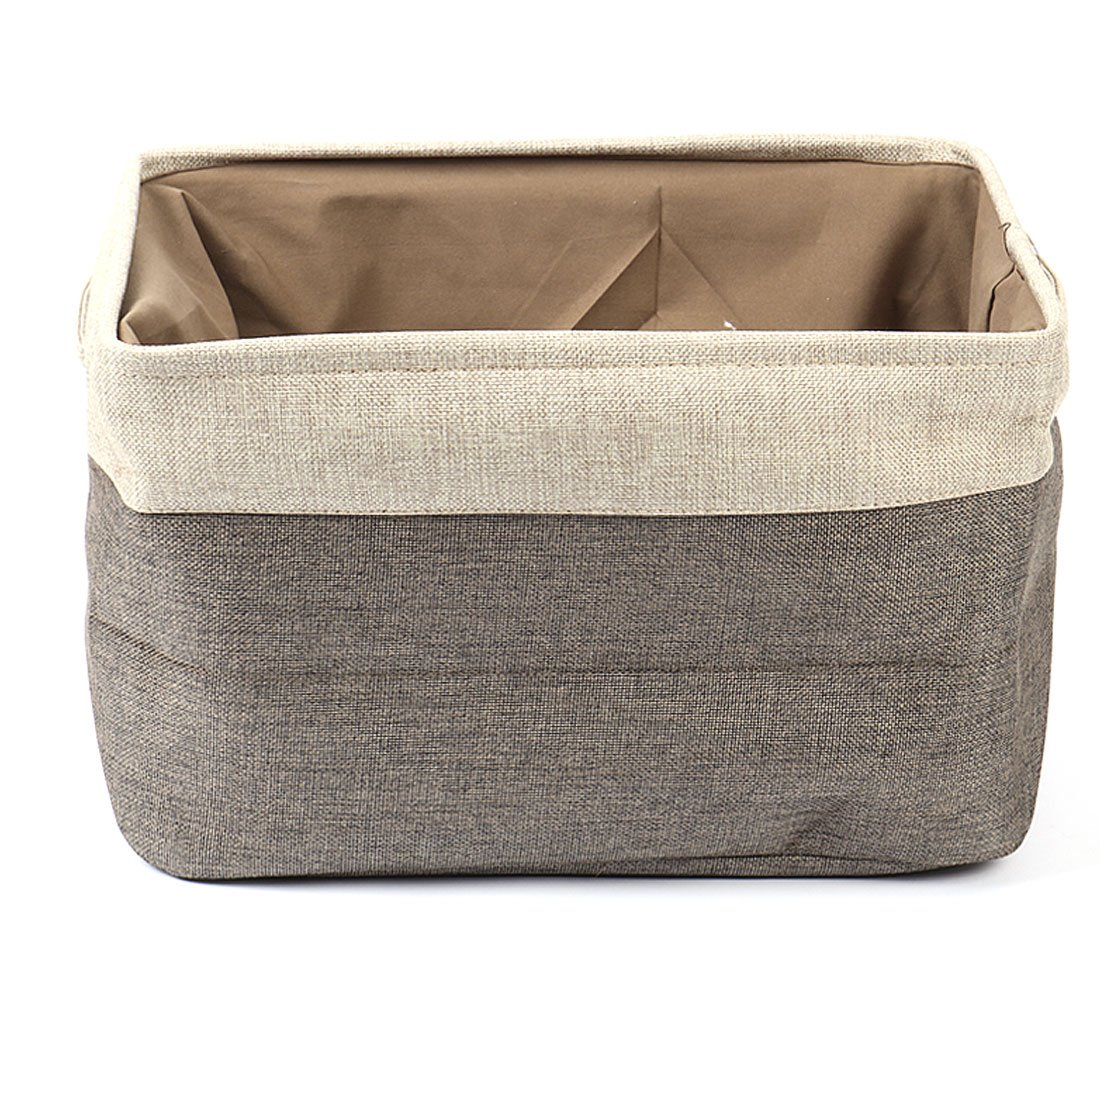 uxcell Collapsible Fabric Storage Basket w Dual Handles, Foldable Canvas Toy Bins for Laundry Clothes Storage Home Organizer for Bedroom Office, Closet, Kitchen & More (Gray, S) a16122800ux1371